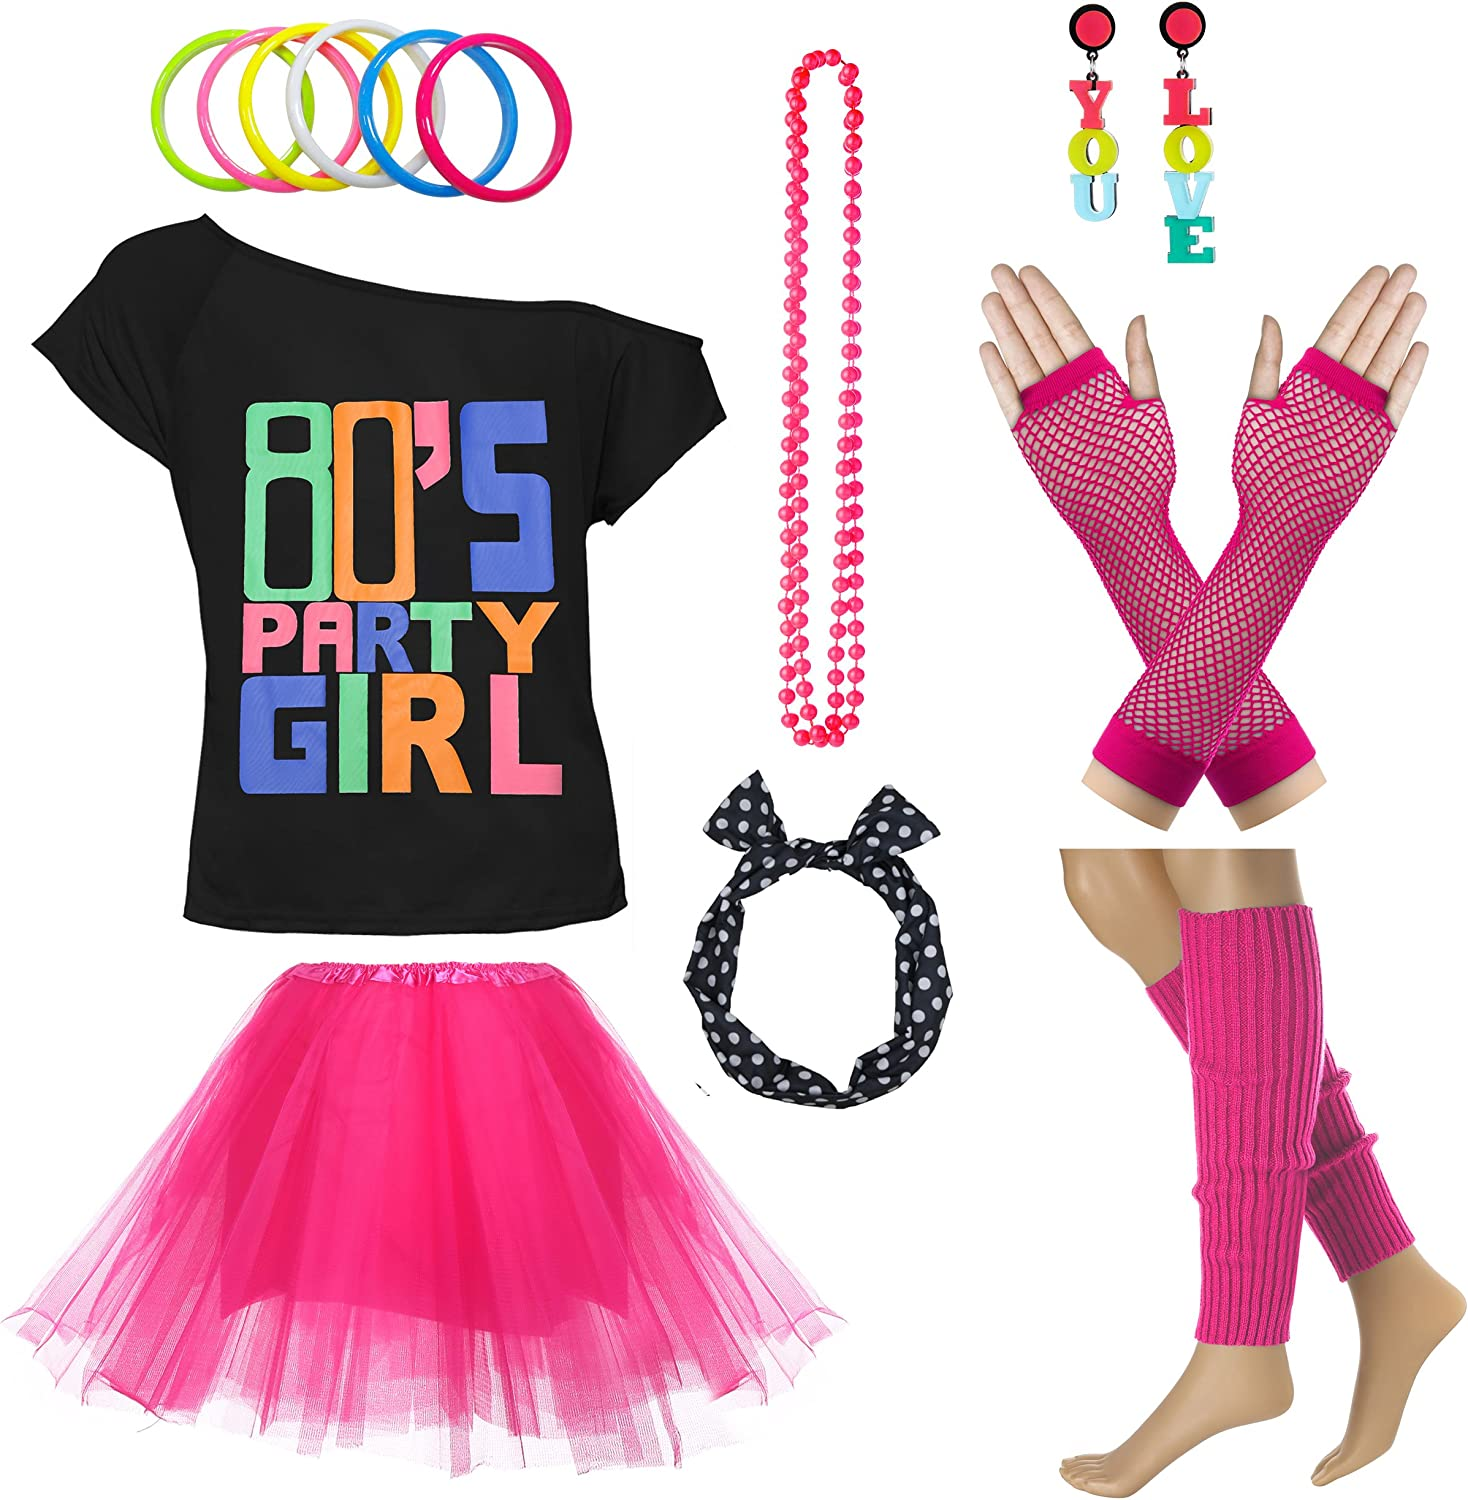 80s Party Womens Retro Costume Accessories Outfit Dress for 1980s Theme Party Supplies